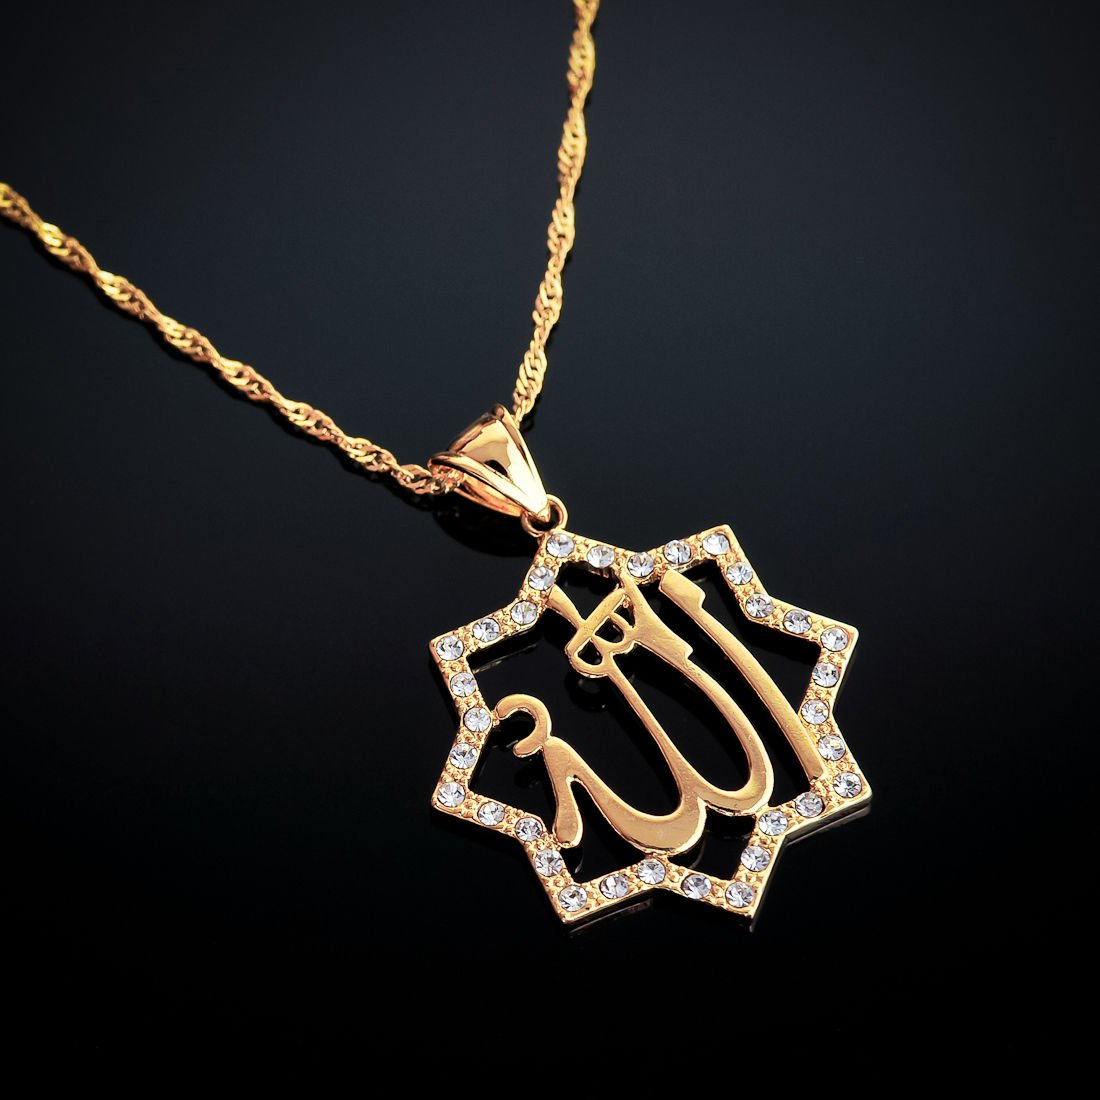 Fashion special 18k gold plated Allah pendant & necklace ! Islam Jewelry & Gift